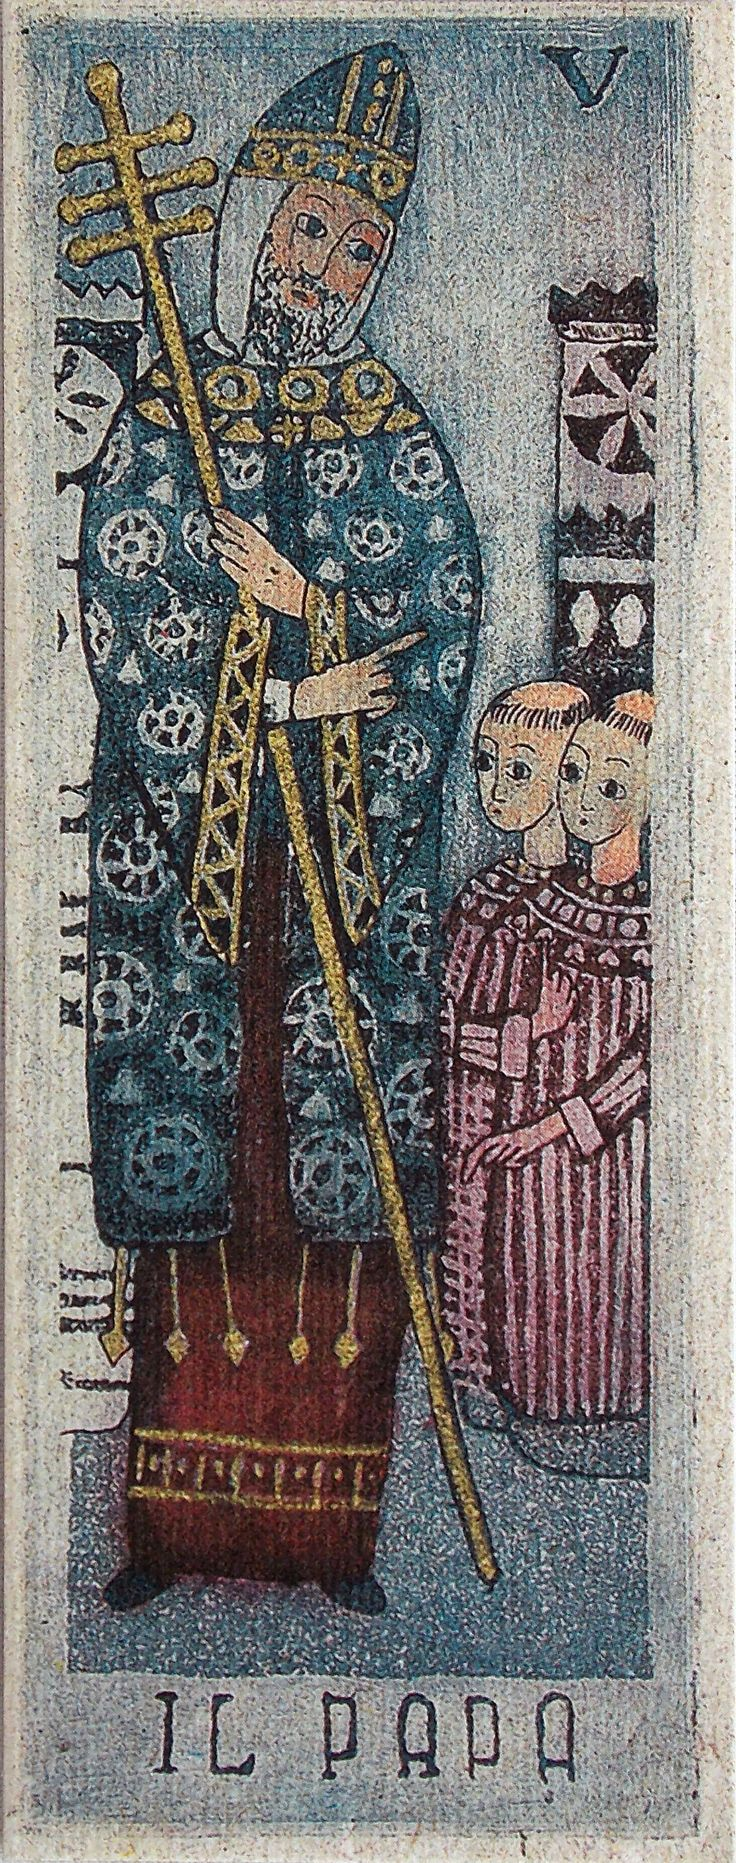 La corte dei Tarocchi /The Court of Tarot/ Printed by : Il Meneghello 1999 Limited Edition – 1100 decks. According to Osvaldo, the originals were engraved on zinc with a water dye technique and then retouched by hand.